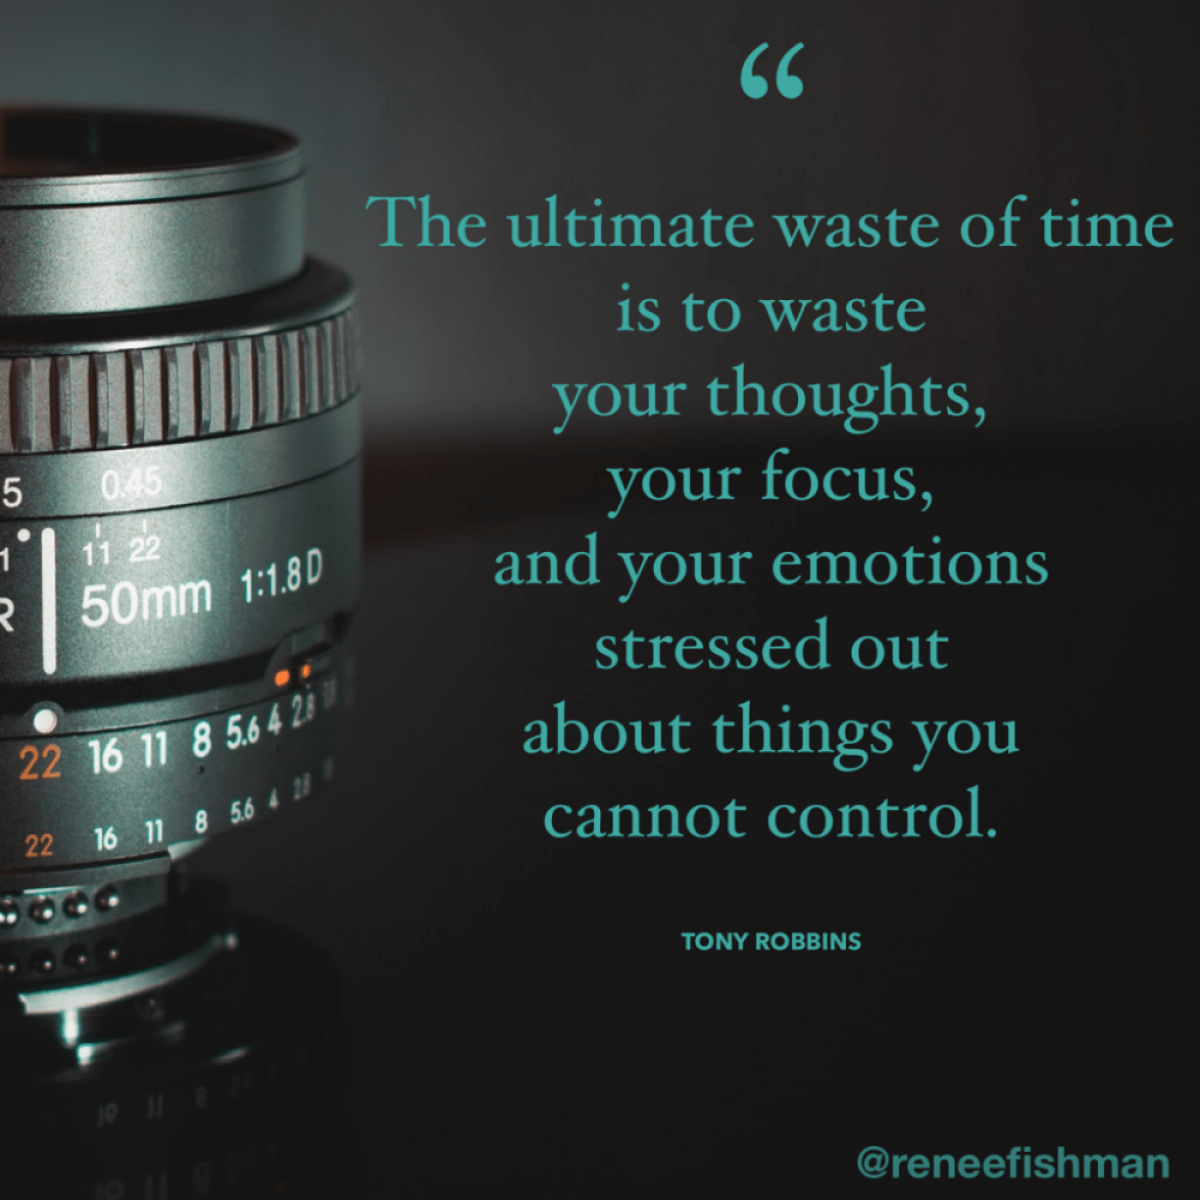 The ultimate waste of time is to waste your thoughts, your focus, and your emotions stressed out about things you cannot control. — Tony Robbins